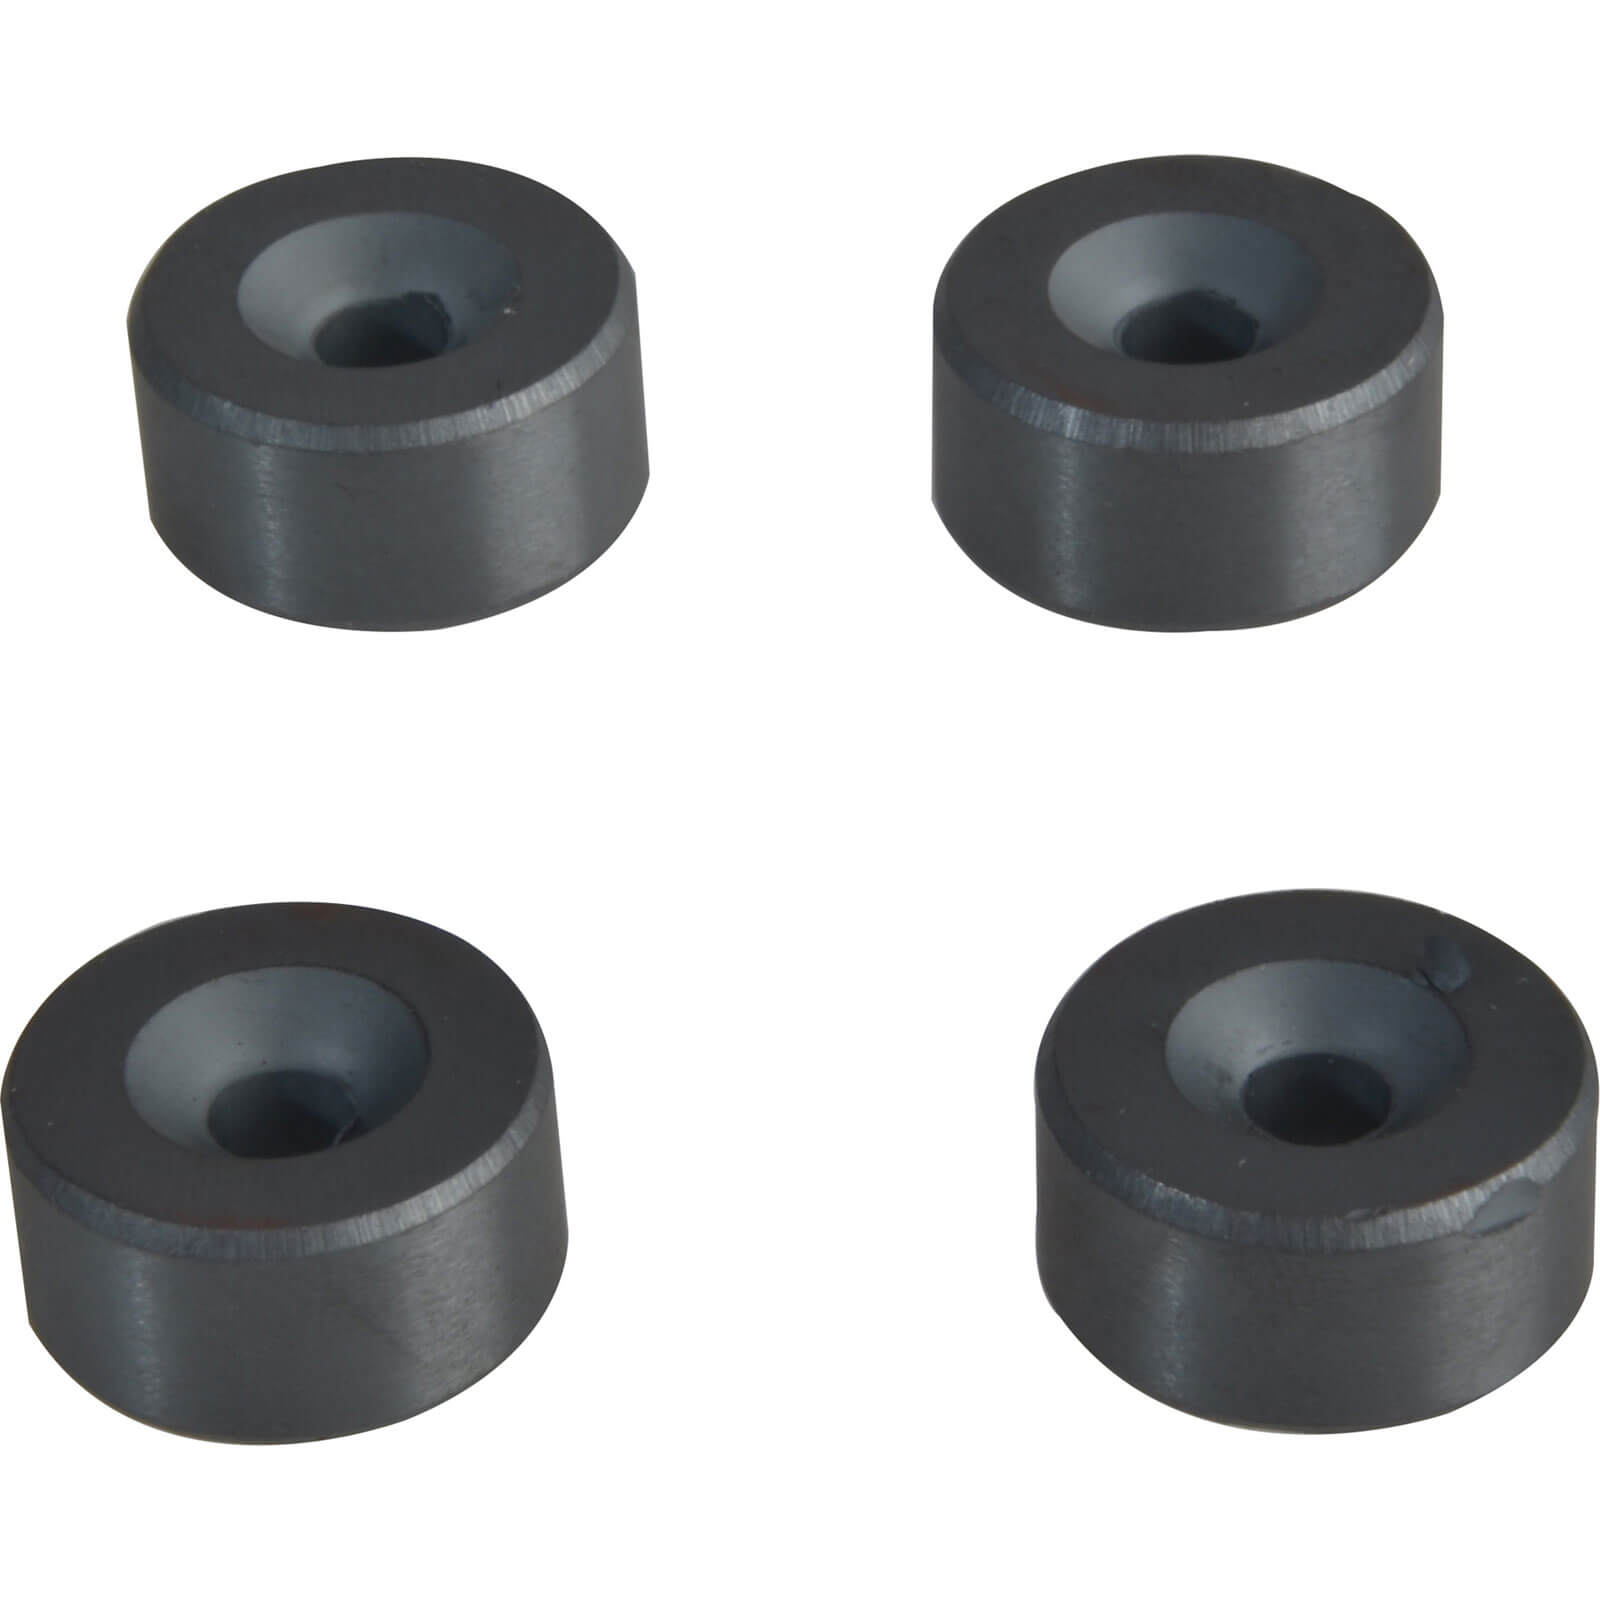 Image of E Magnet 630 Ferrite Magnet with Countersink 20mm Pack of 4